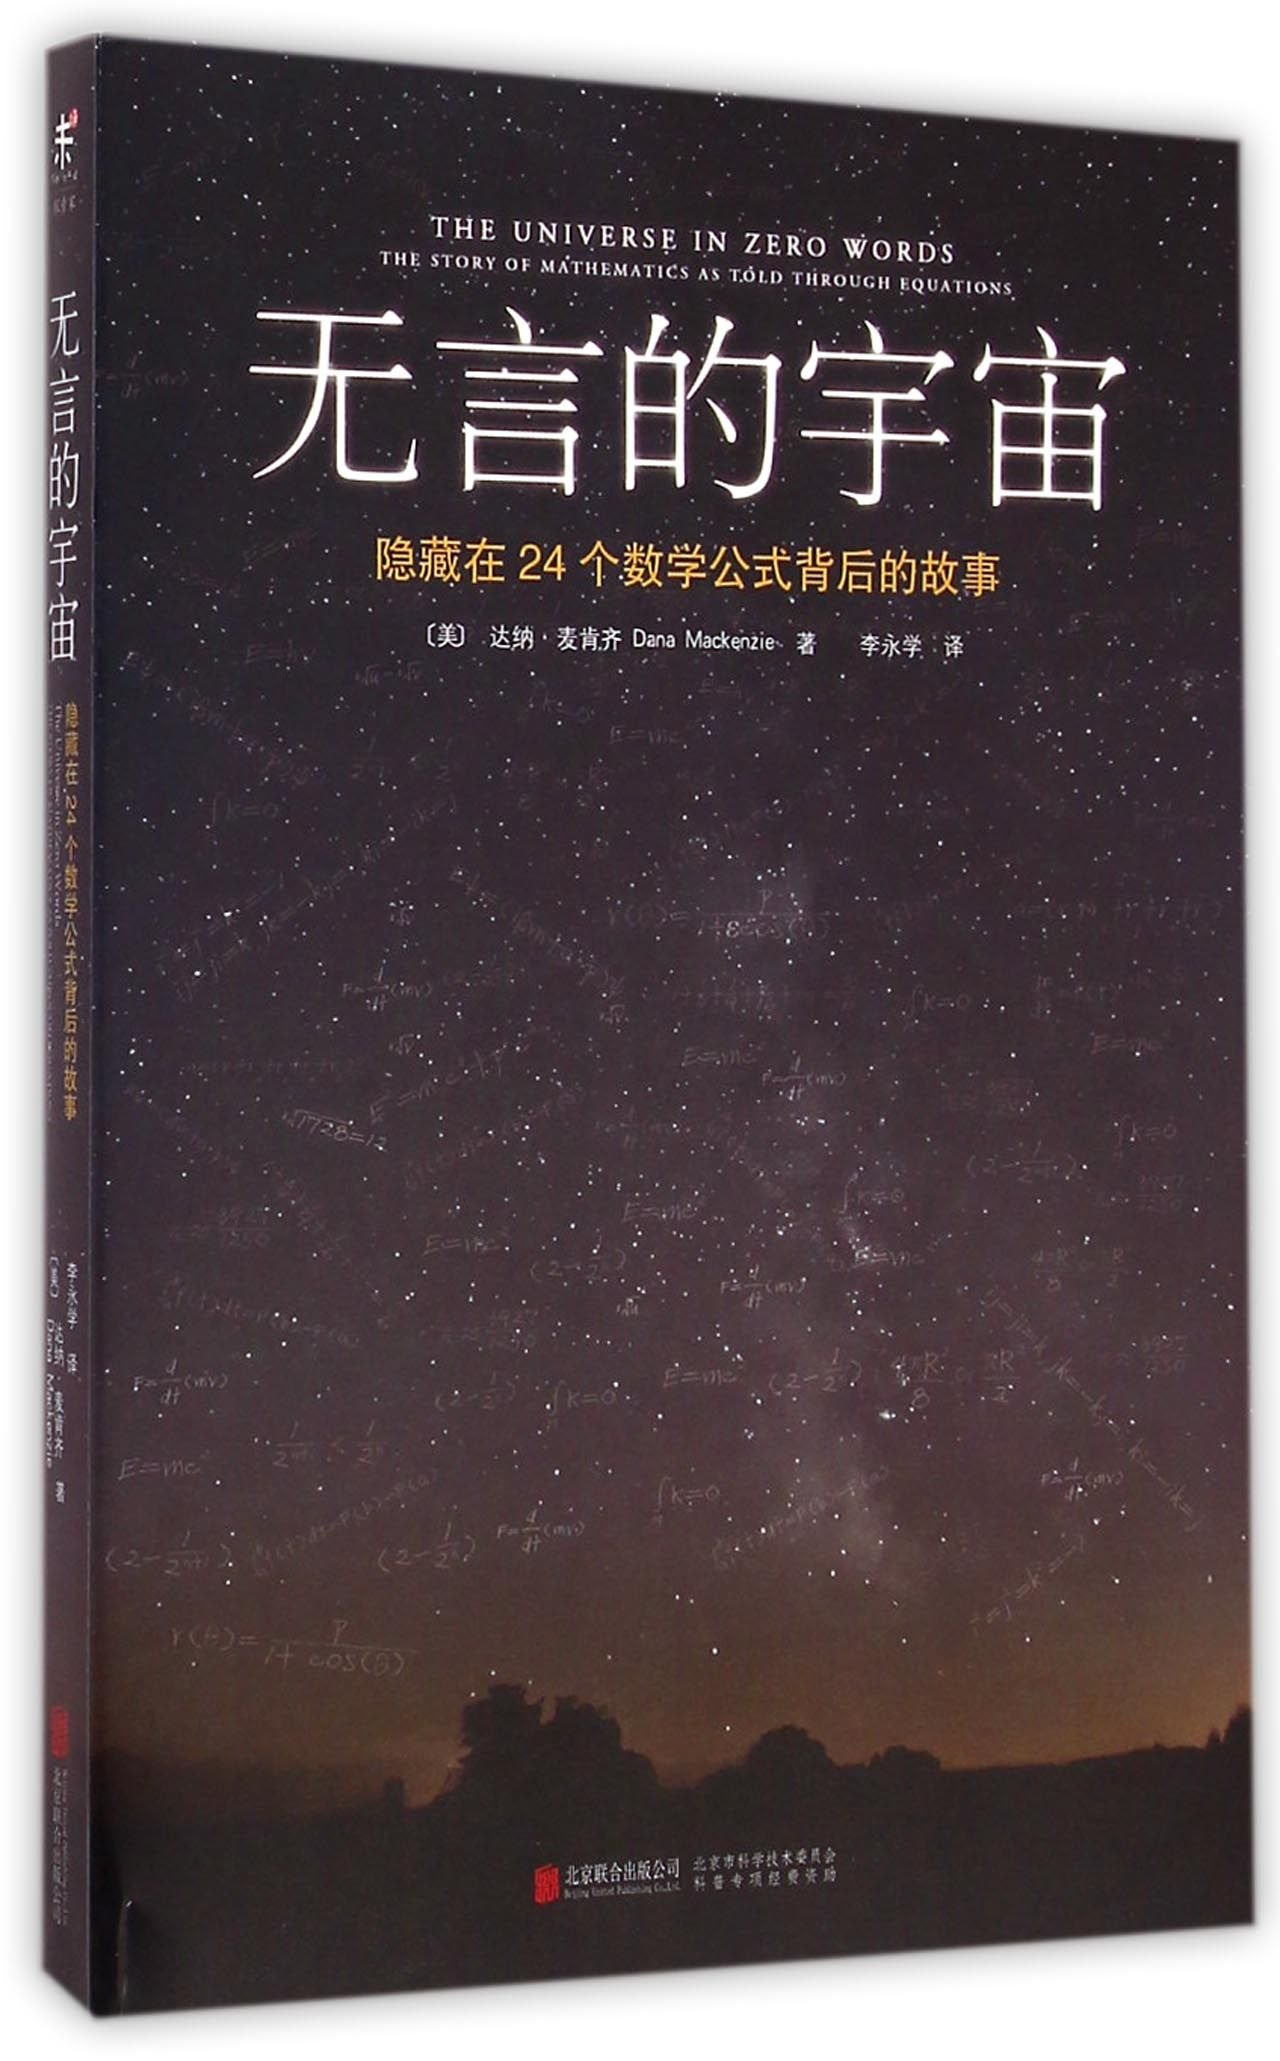 Download The Universe in Zero Words:the Story of Mathematics As Told Through Equations (Chinese Edition) PDF